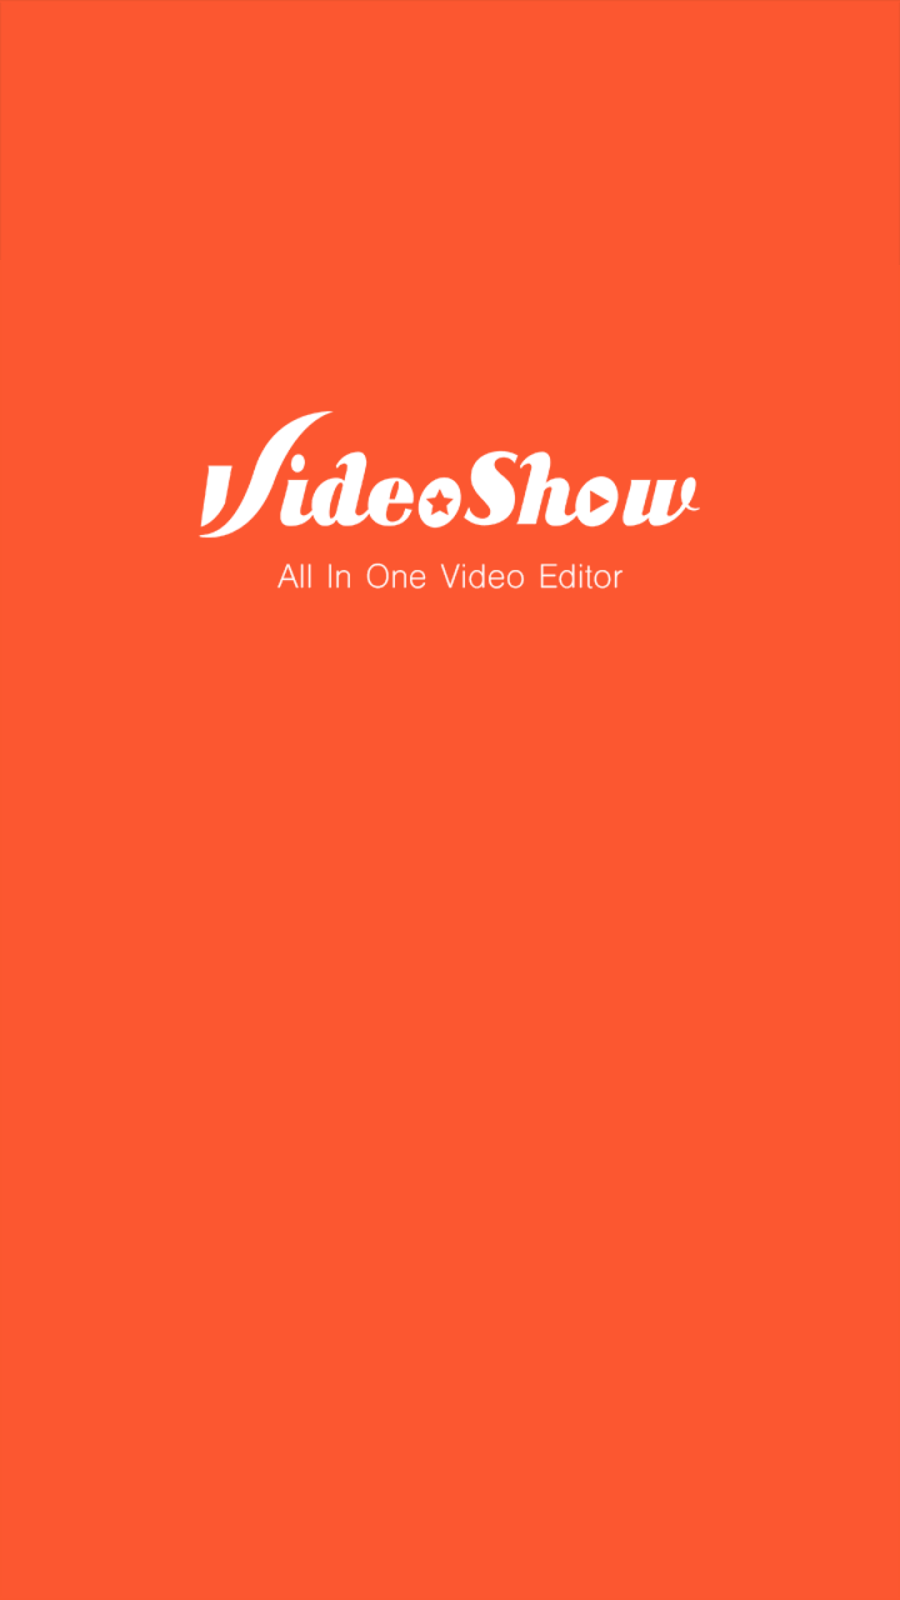 Videoshow video editor app review | Get VideoShow: Video Editor